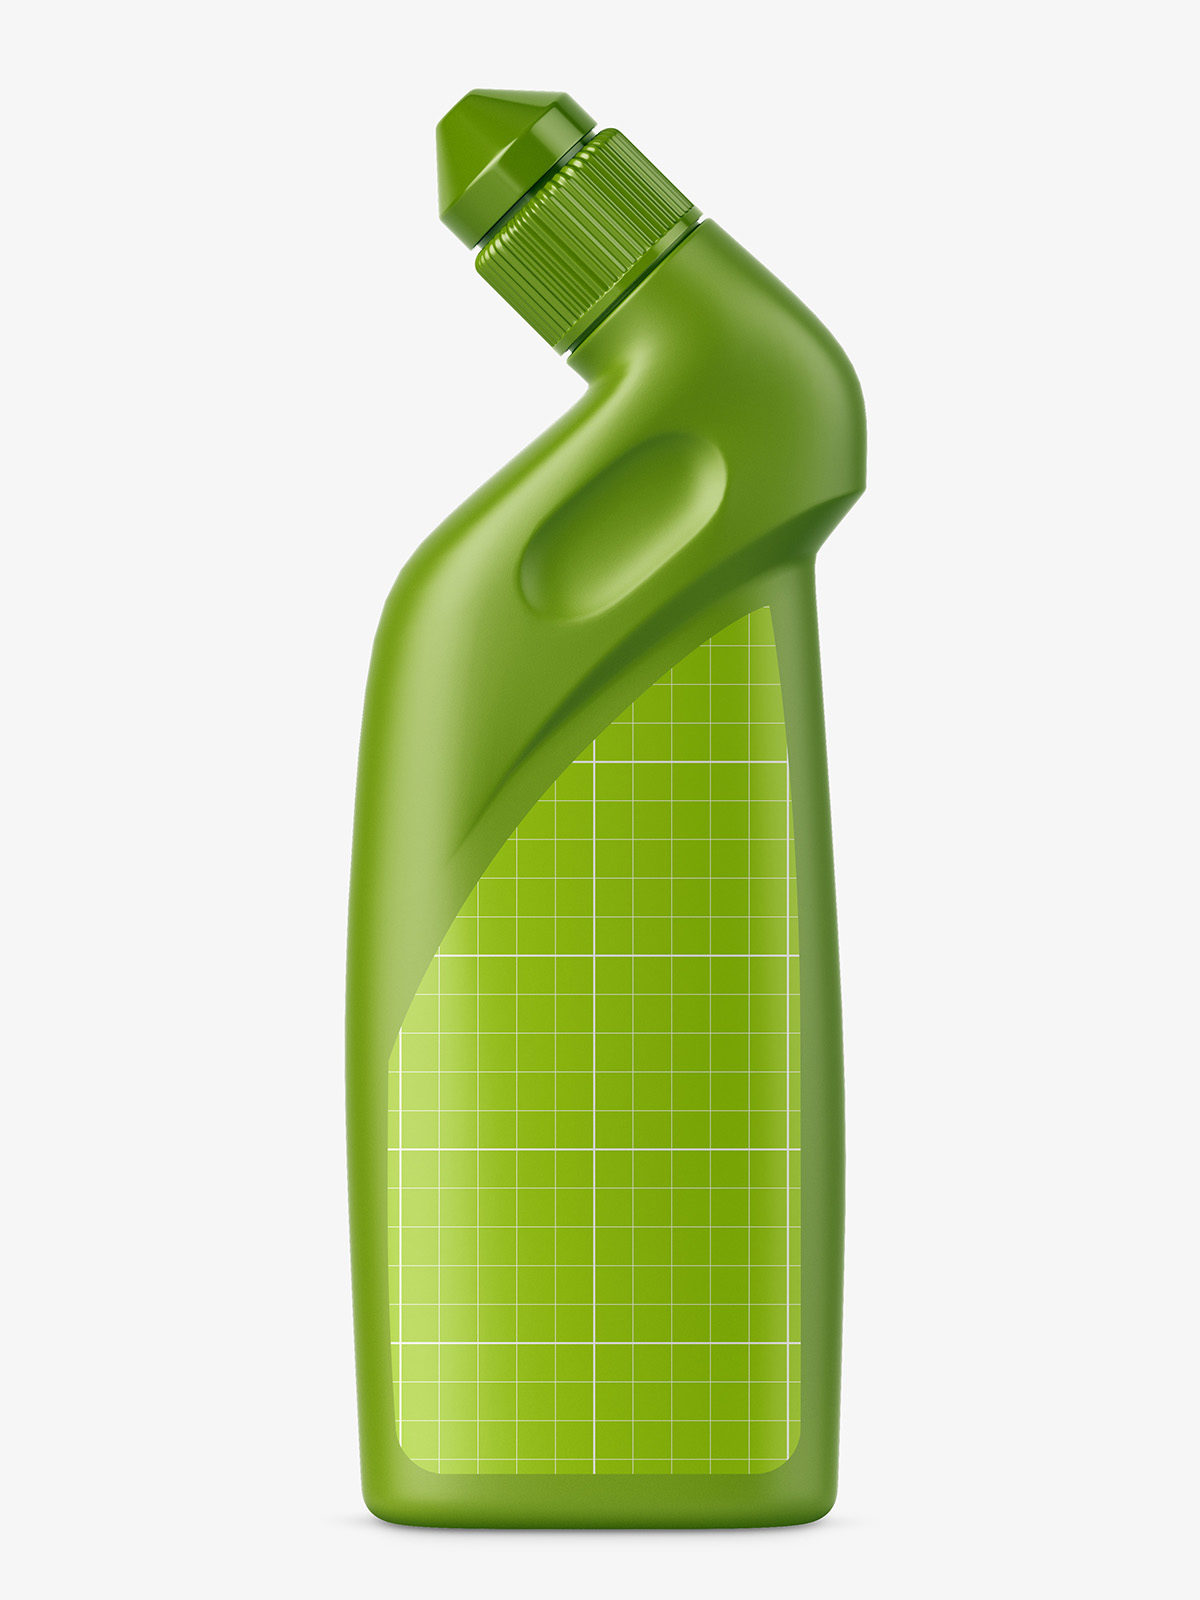 Toilet bottle mockup